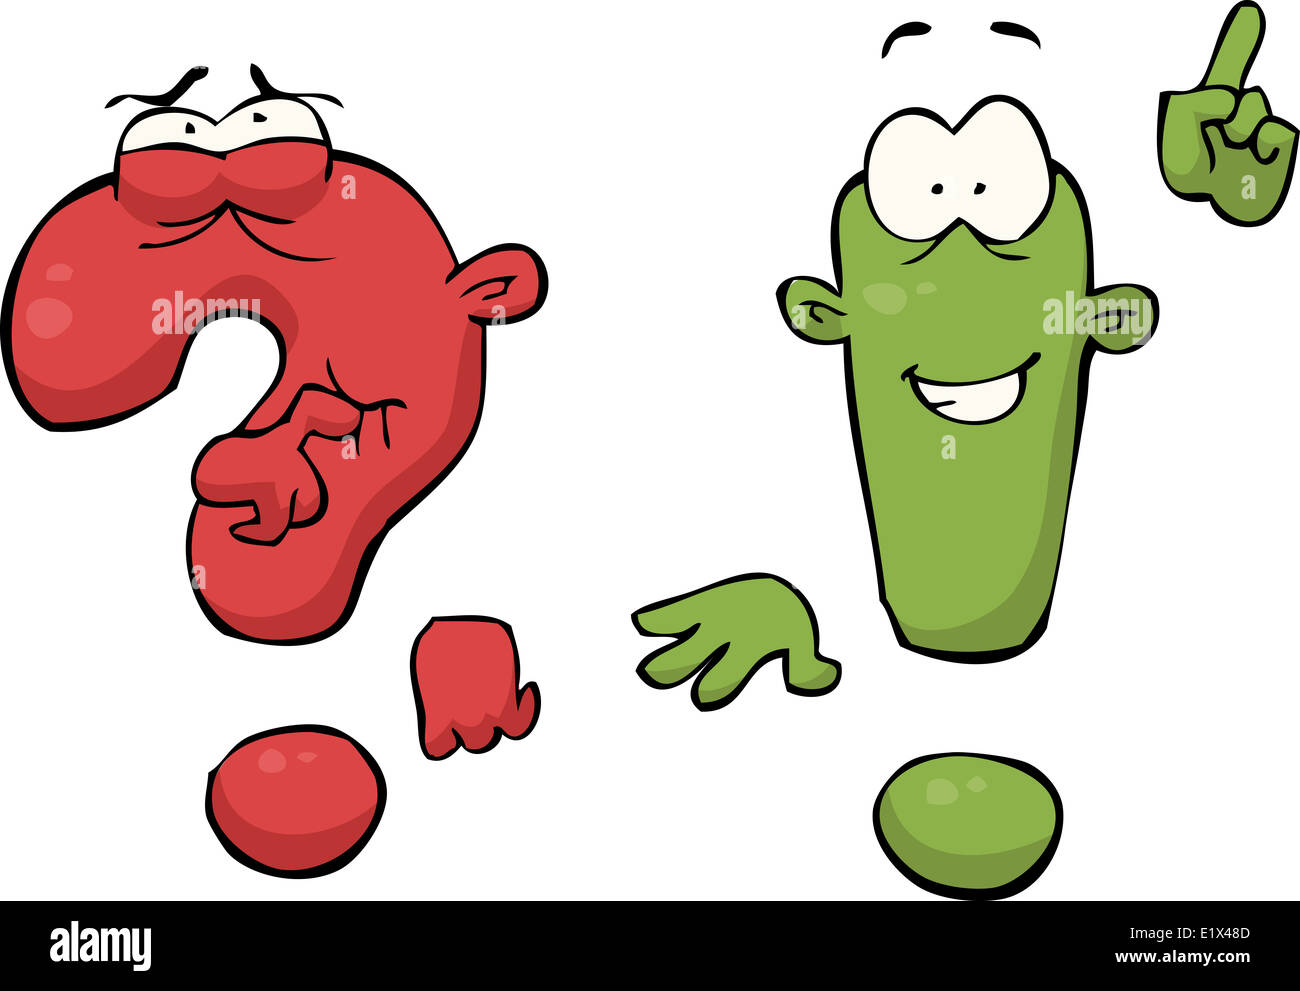 cartoon exclamation and question marks stock photo 70030253 alamy